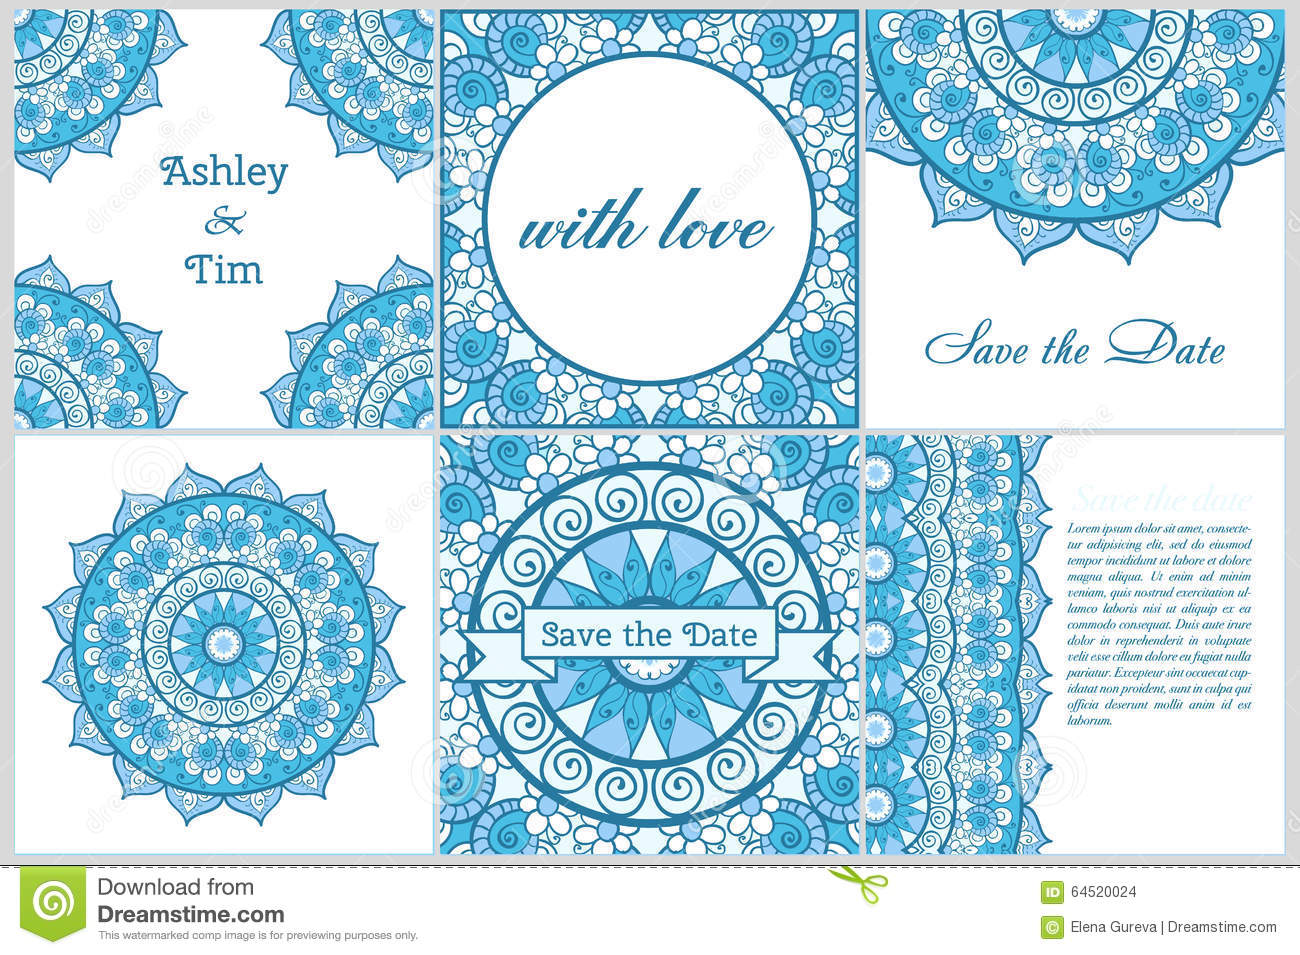 Set of business card and invitation card templates with lace set of business card and invitation card templates with lace ornament yoga center indian islam arabic ottoman motifs vintage stopboris Image collections